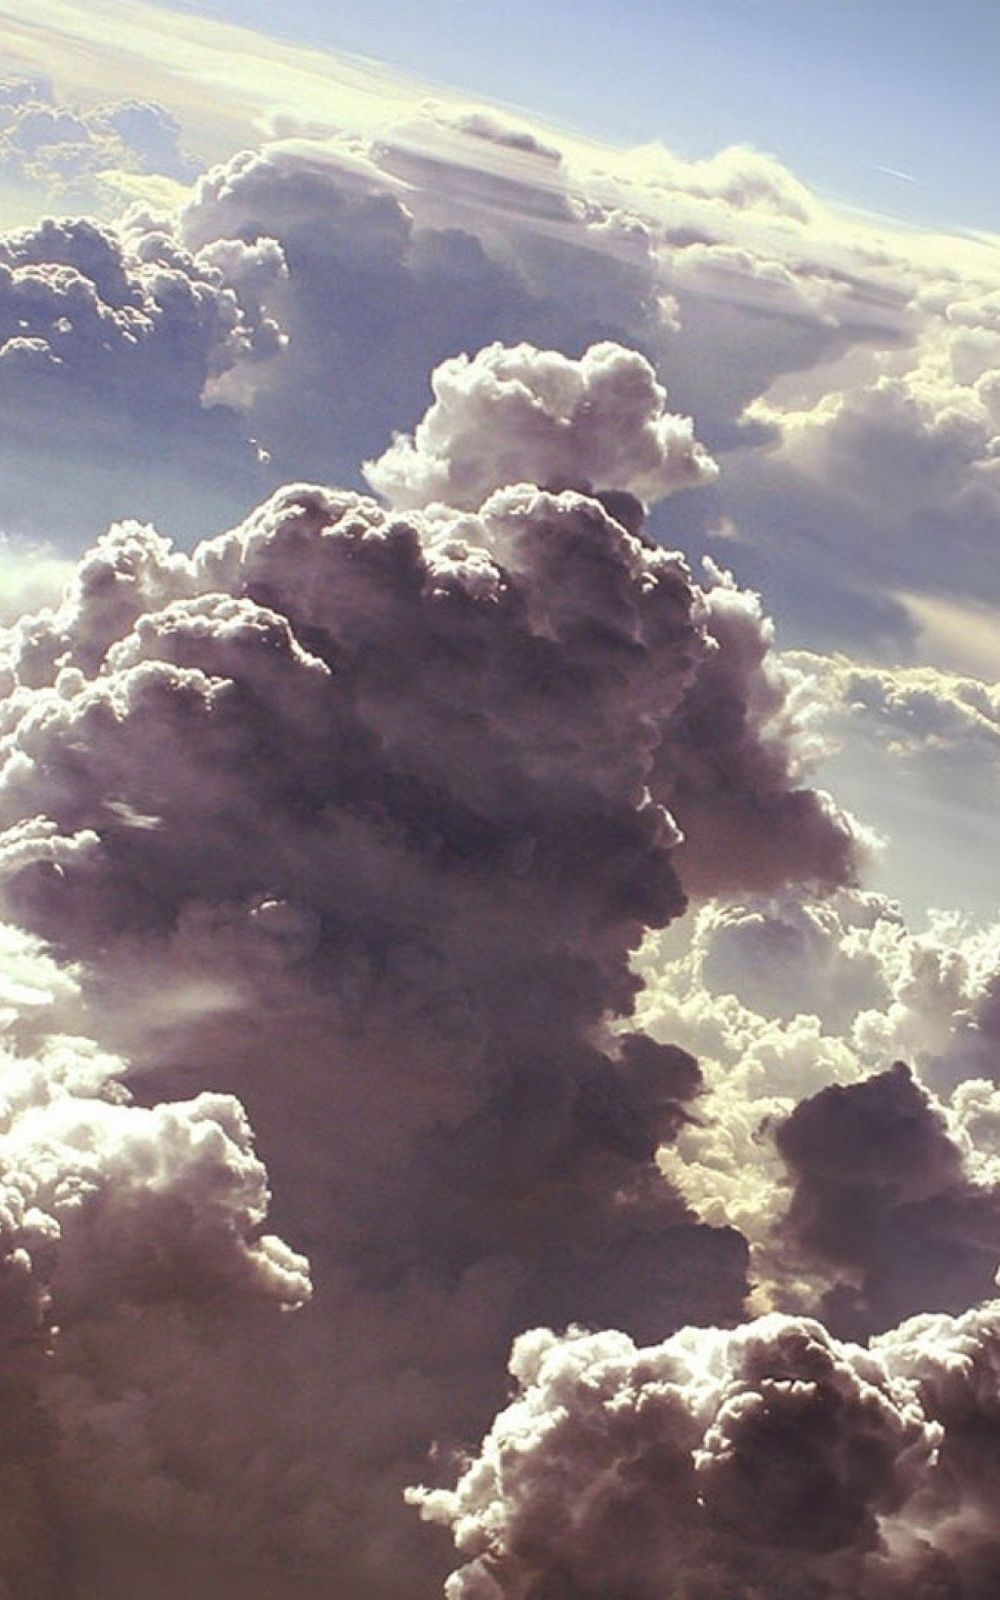 Hd Clouds Wallpapers Posted By Michelle Mercado